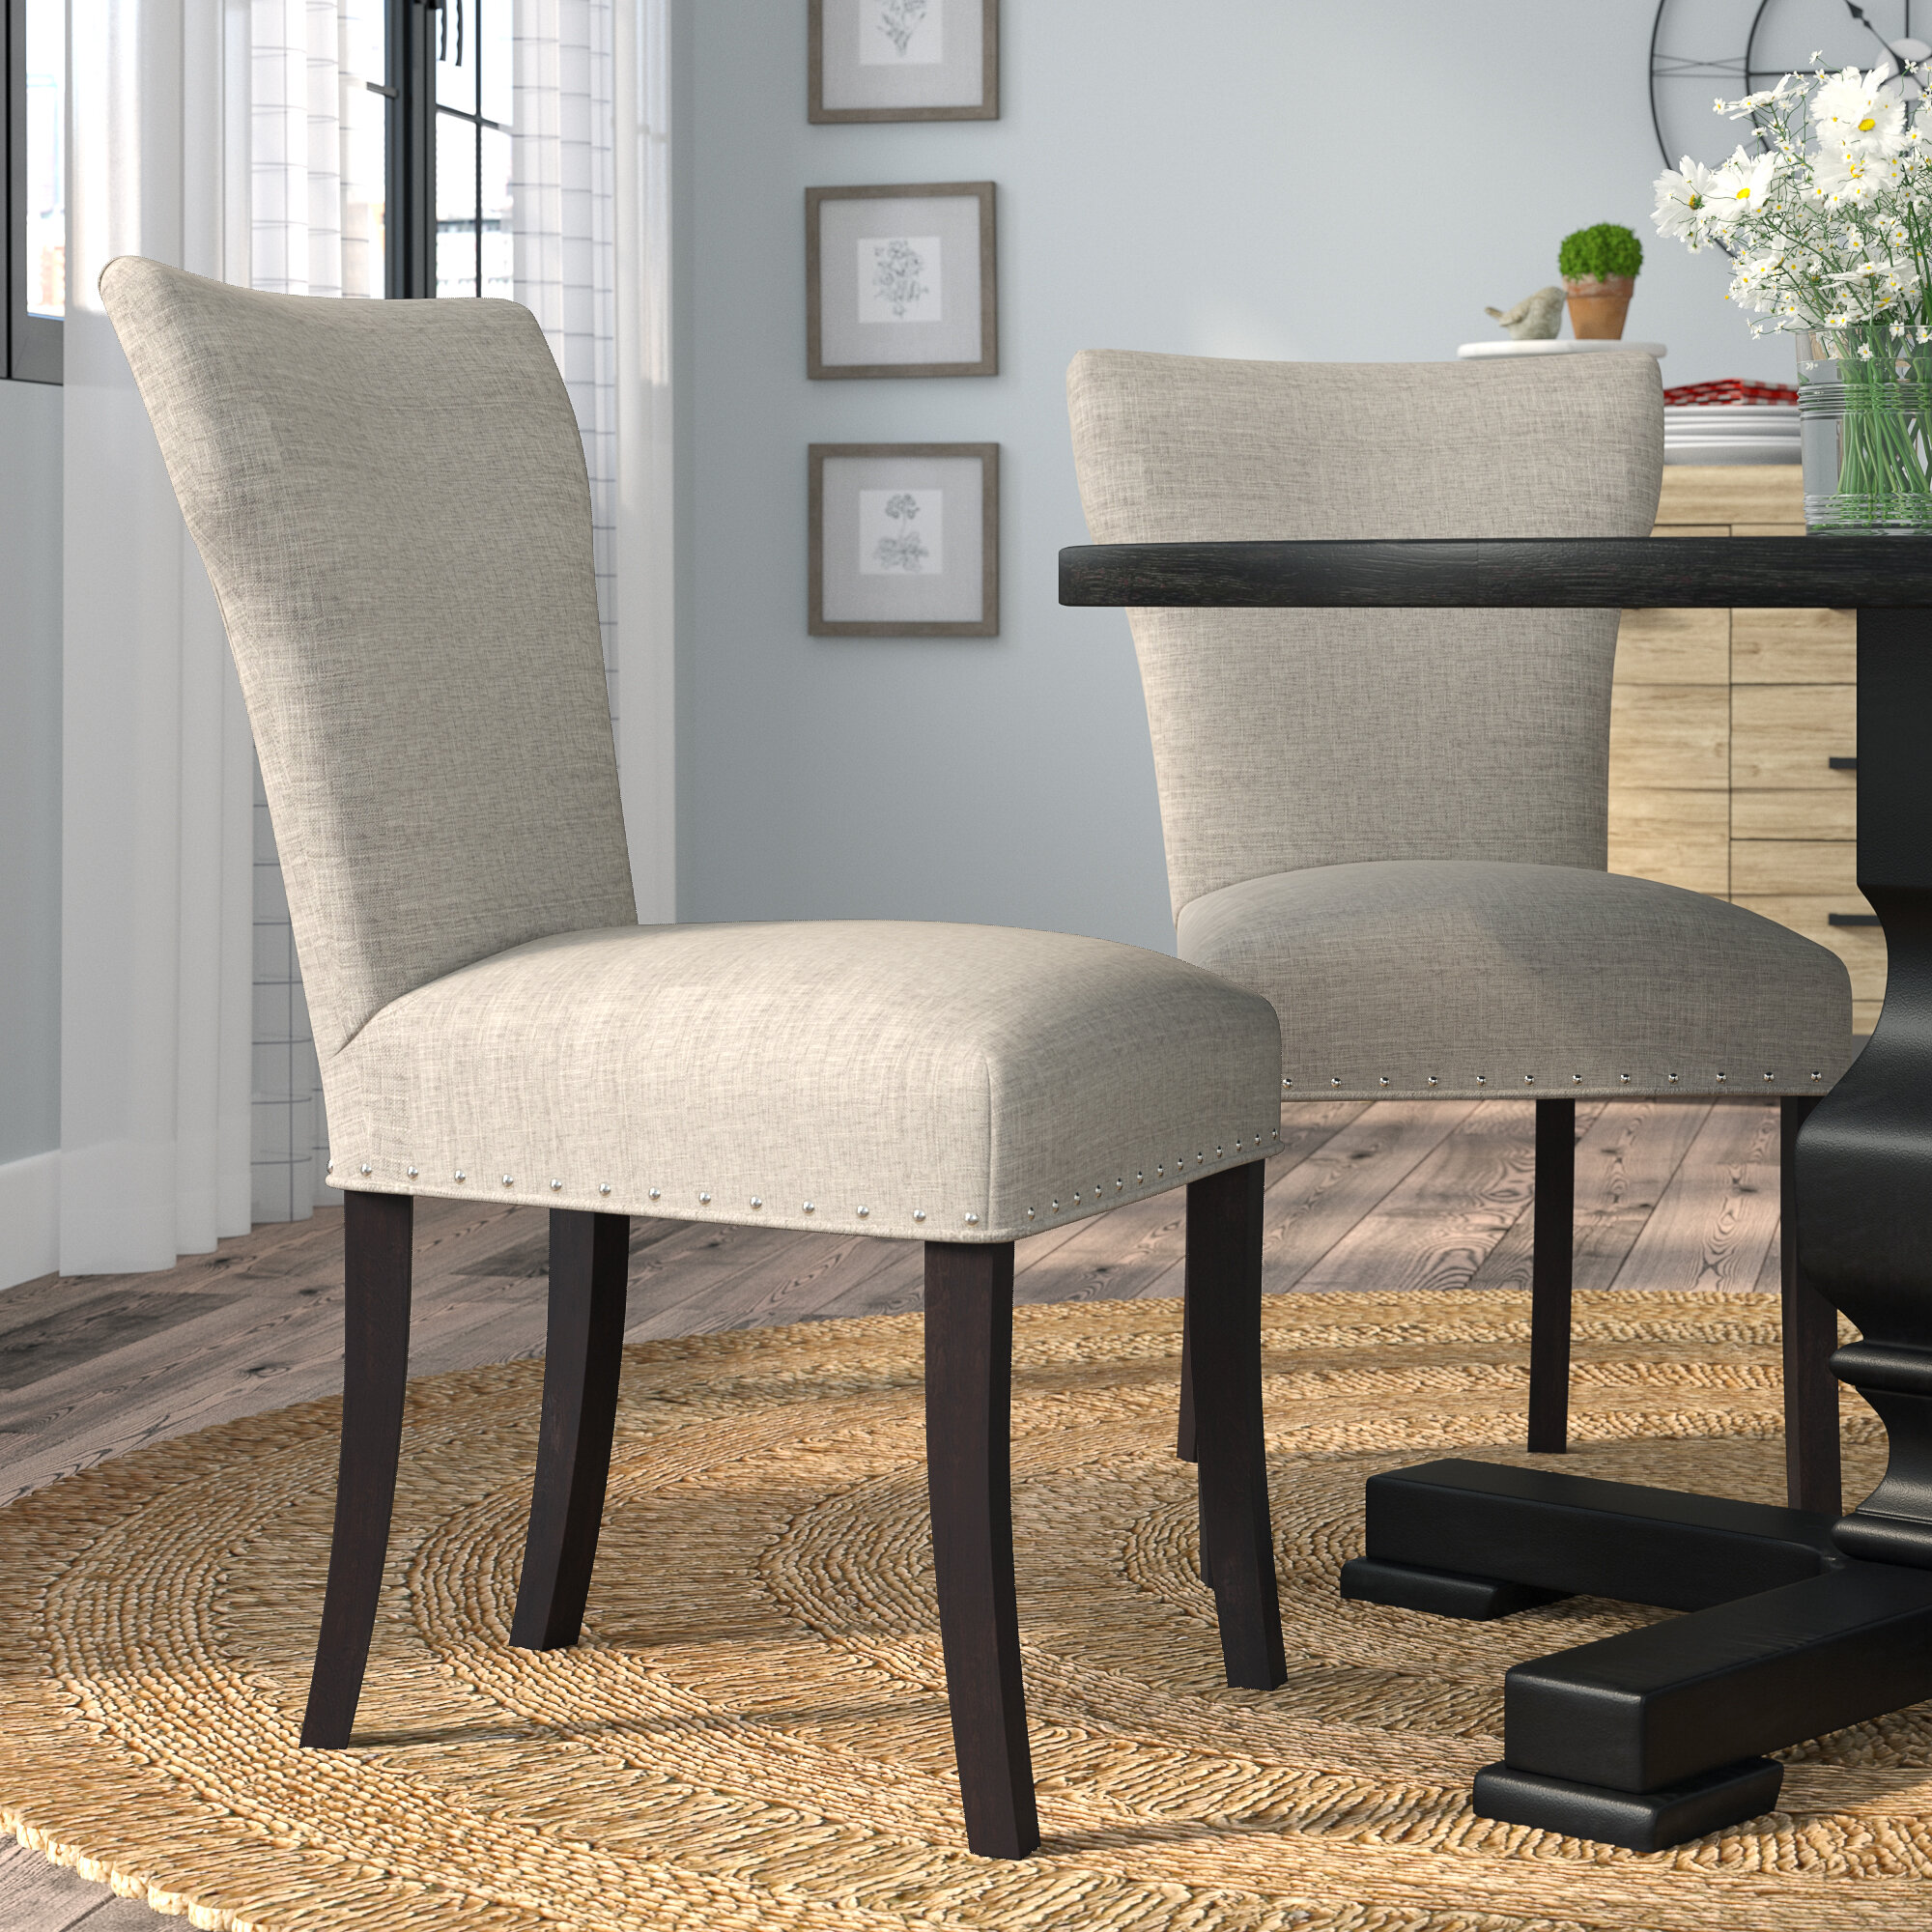 Lorie Upholstered Contemporary Parsons Chair